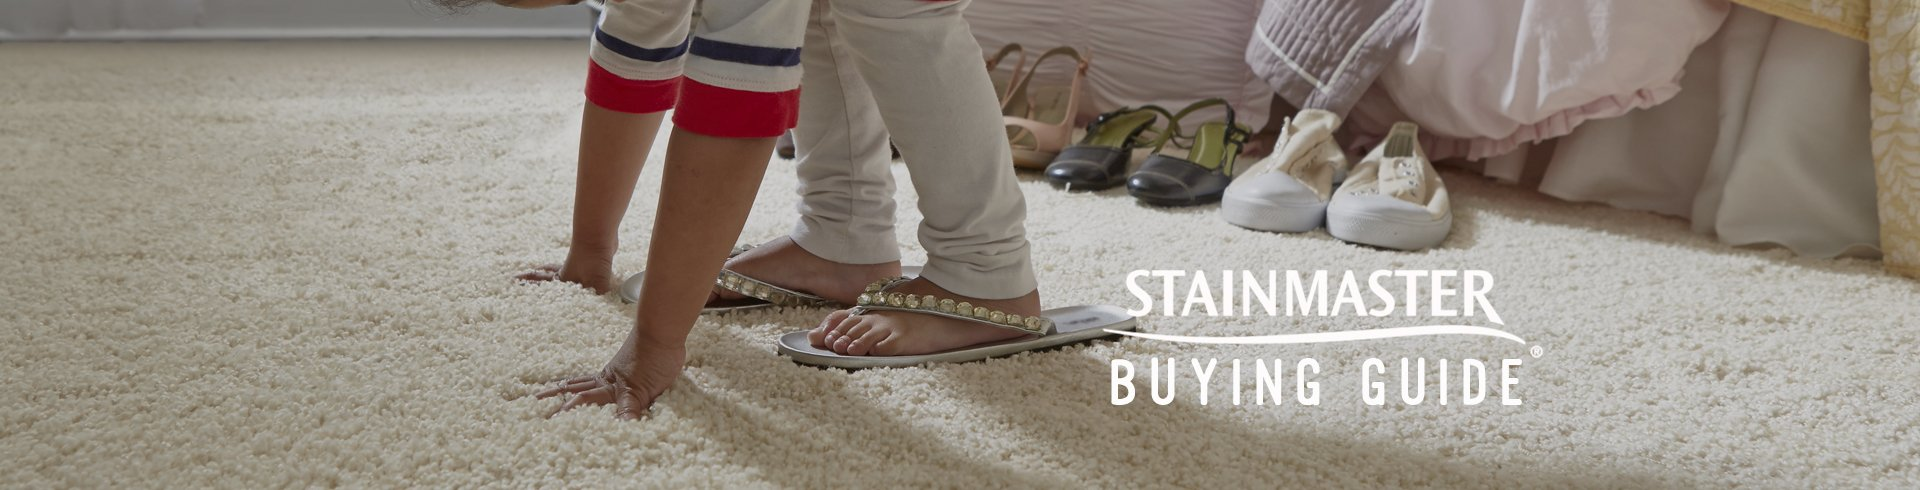 Stainmaster carpet buying guide room to talk rc willey for Carpet buying guide